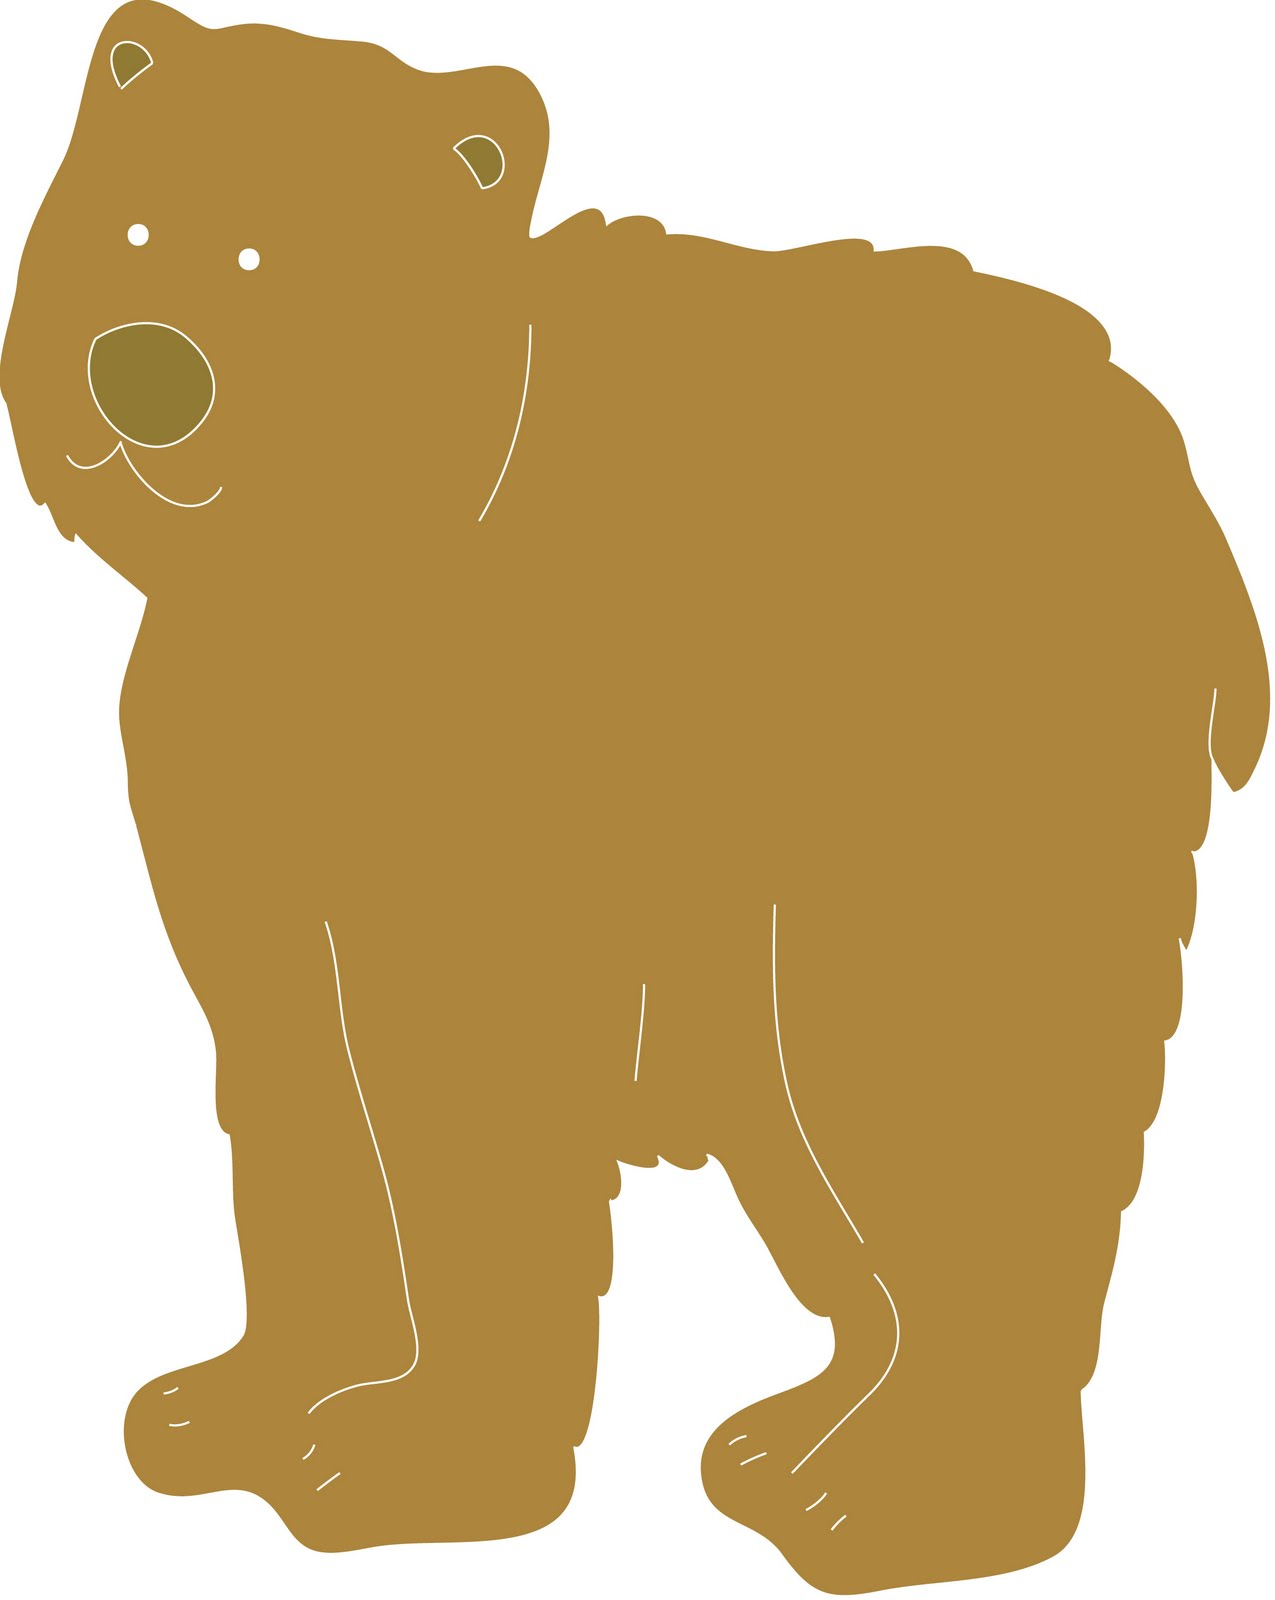 Homeschool Parent Brown Bear Brown Bear What Do You See